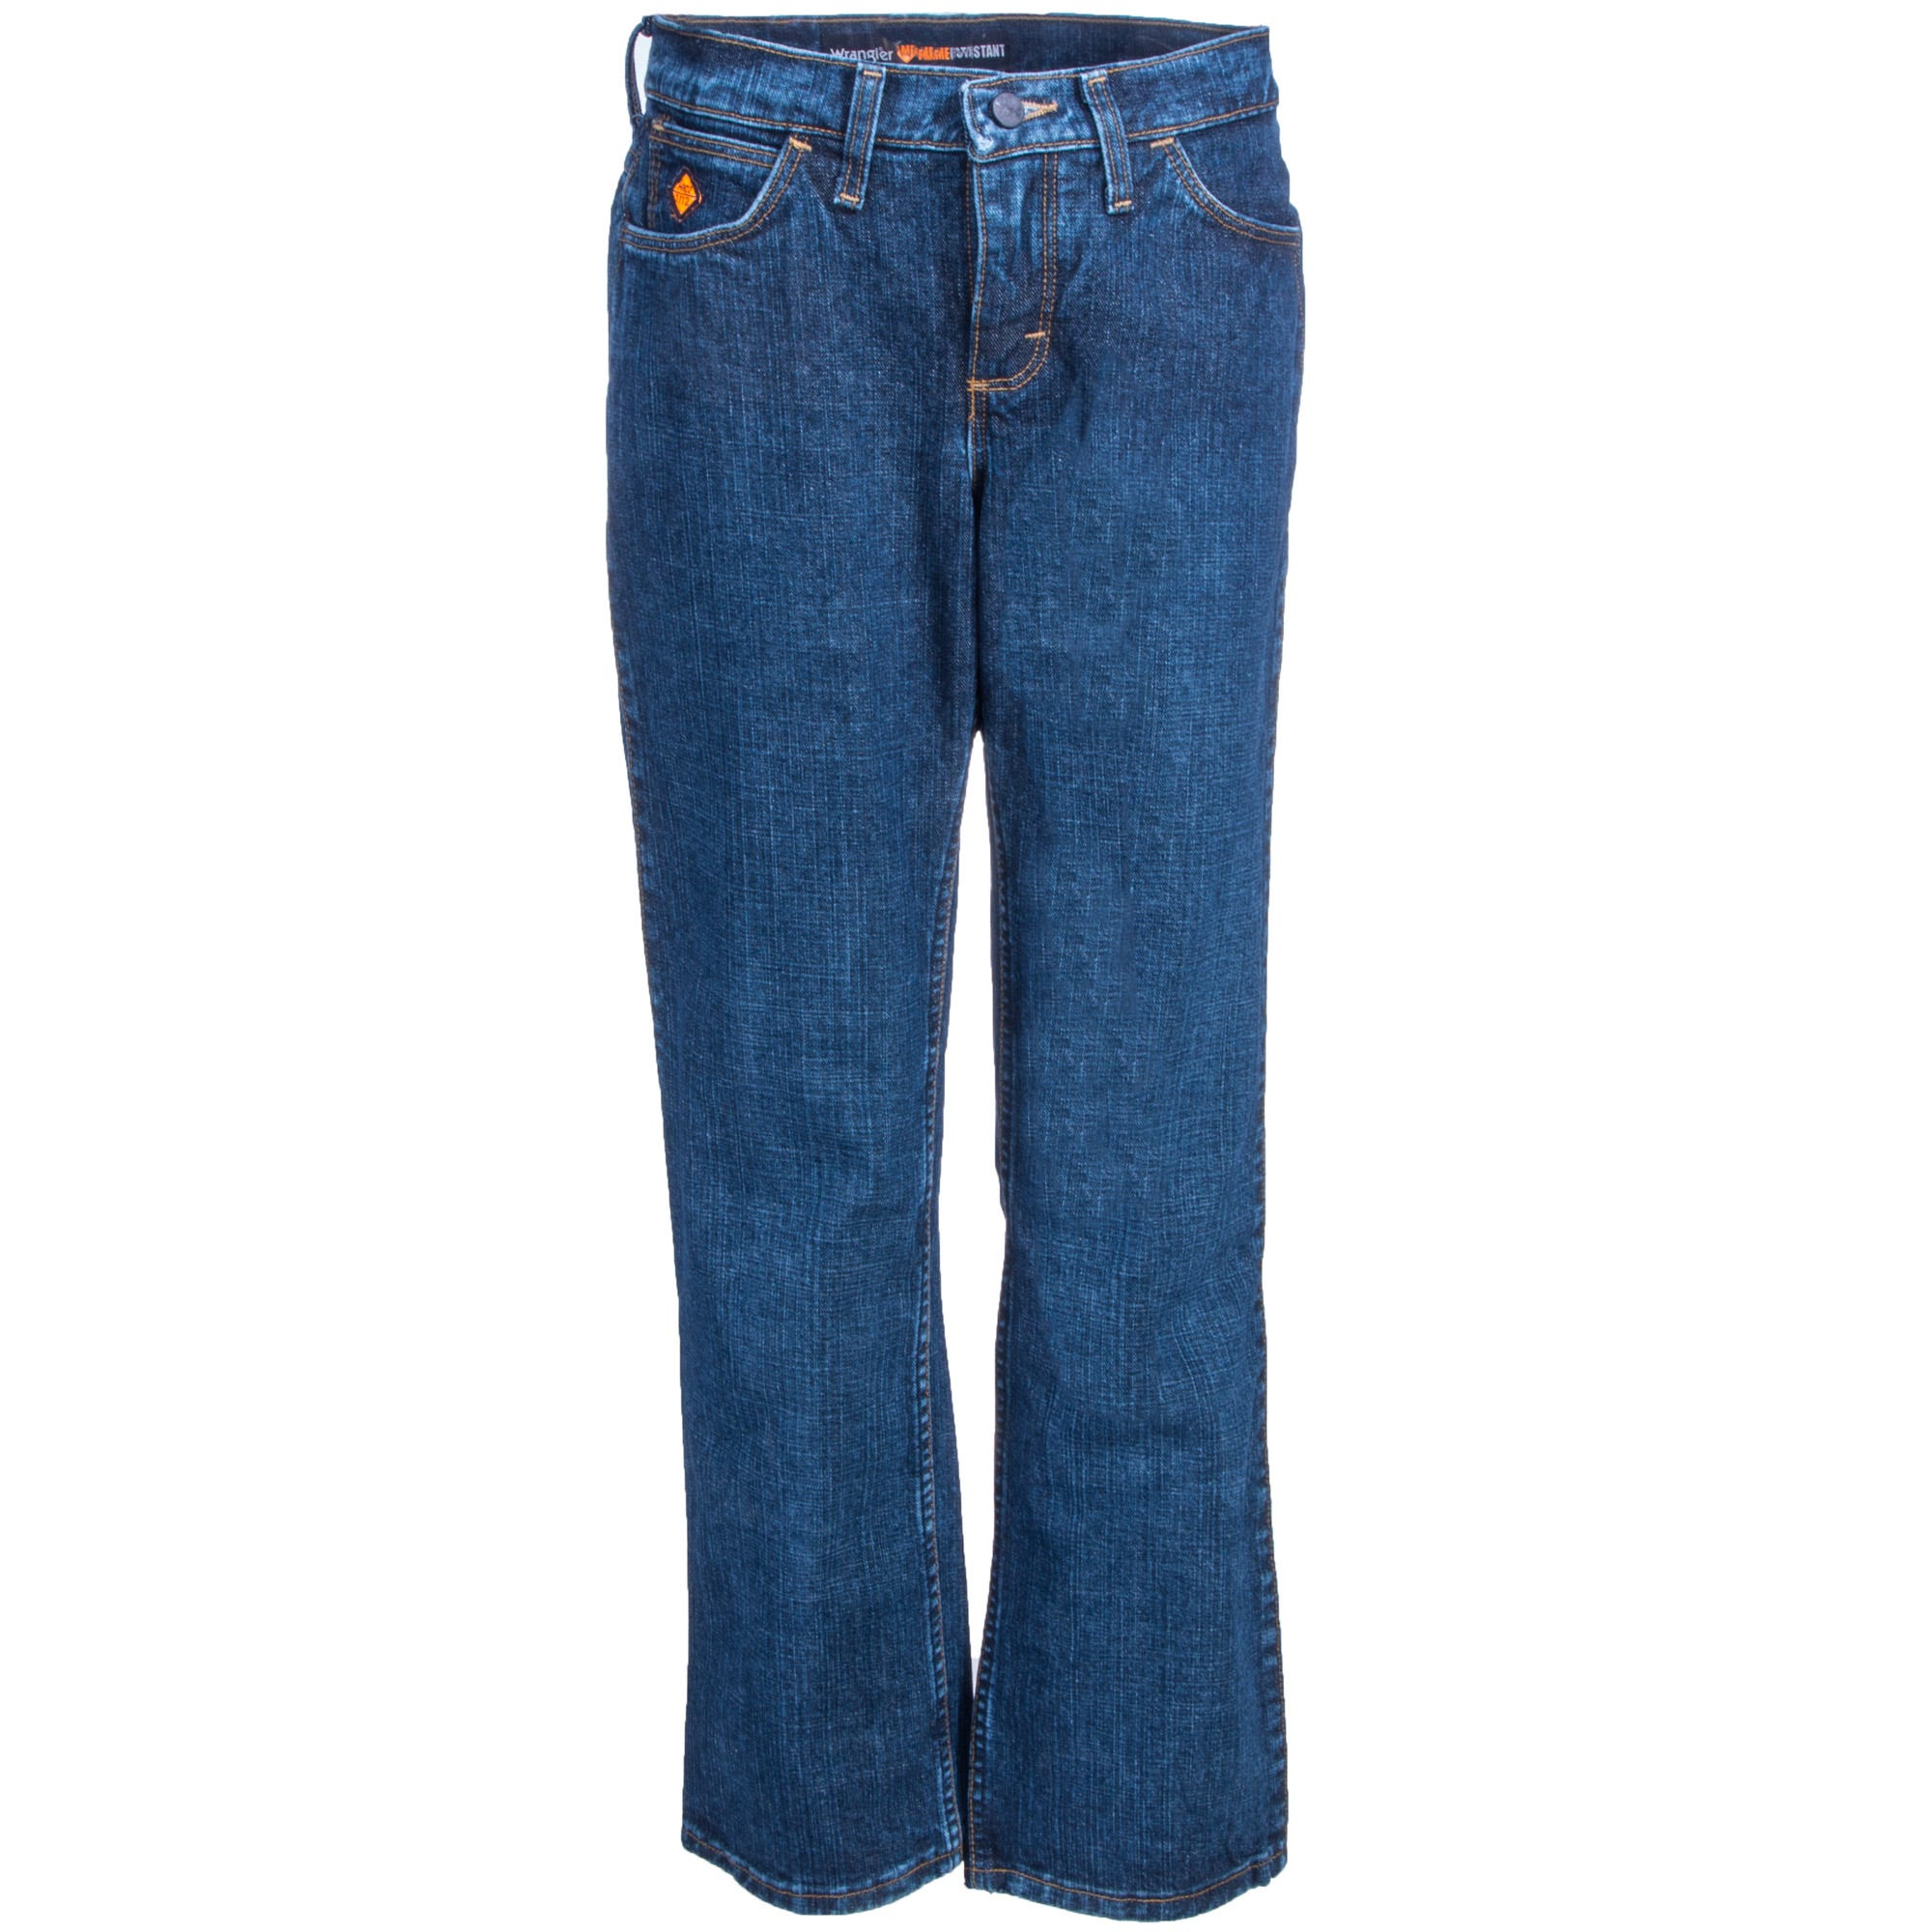 Wrangler Women's Crosshatch FRW10CH Flame Resistant Relaxed Fit Work Jeans